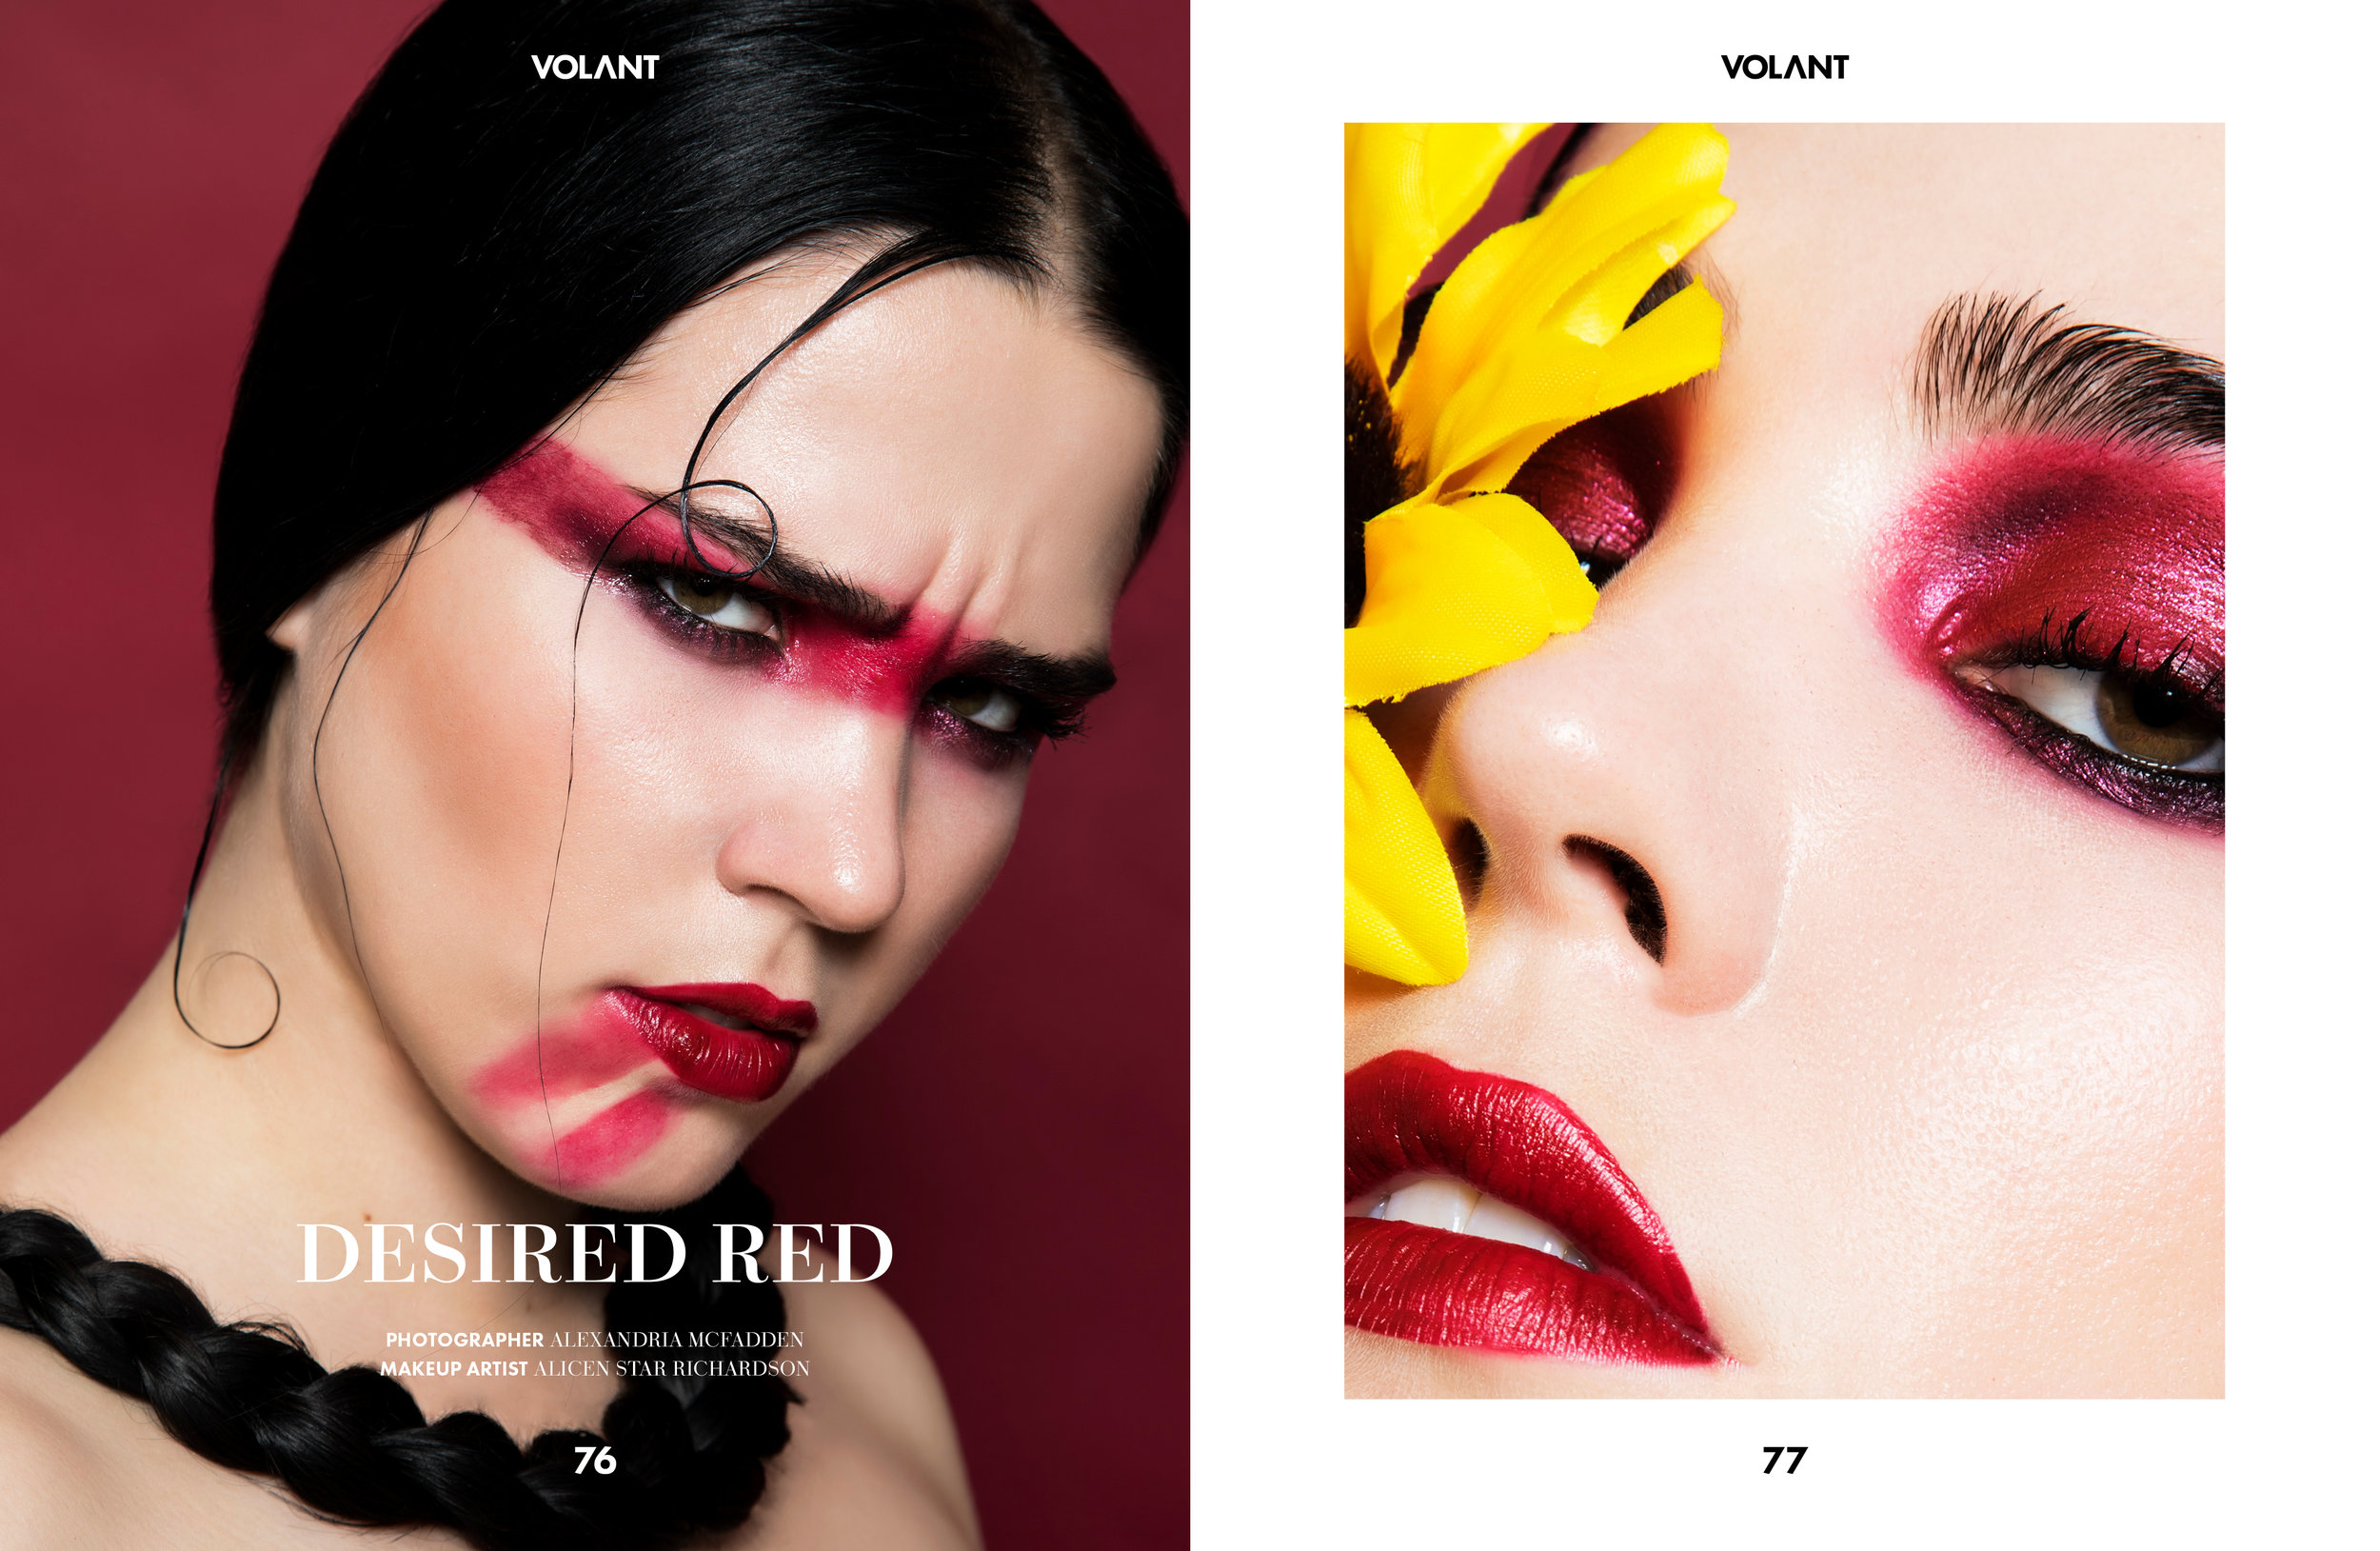 VOLANT_Beauty_Issue_VOL0139.jpg